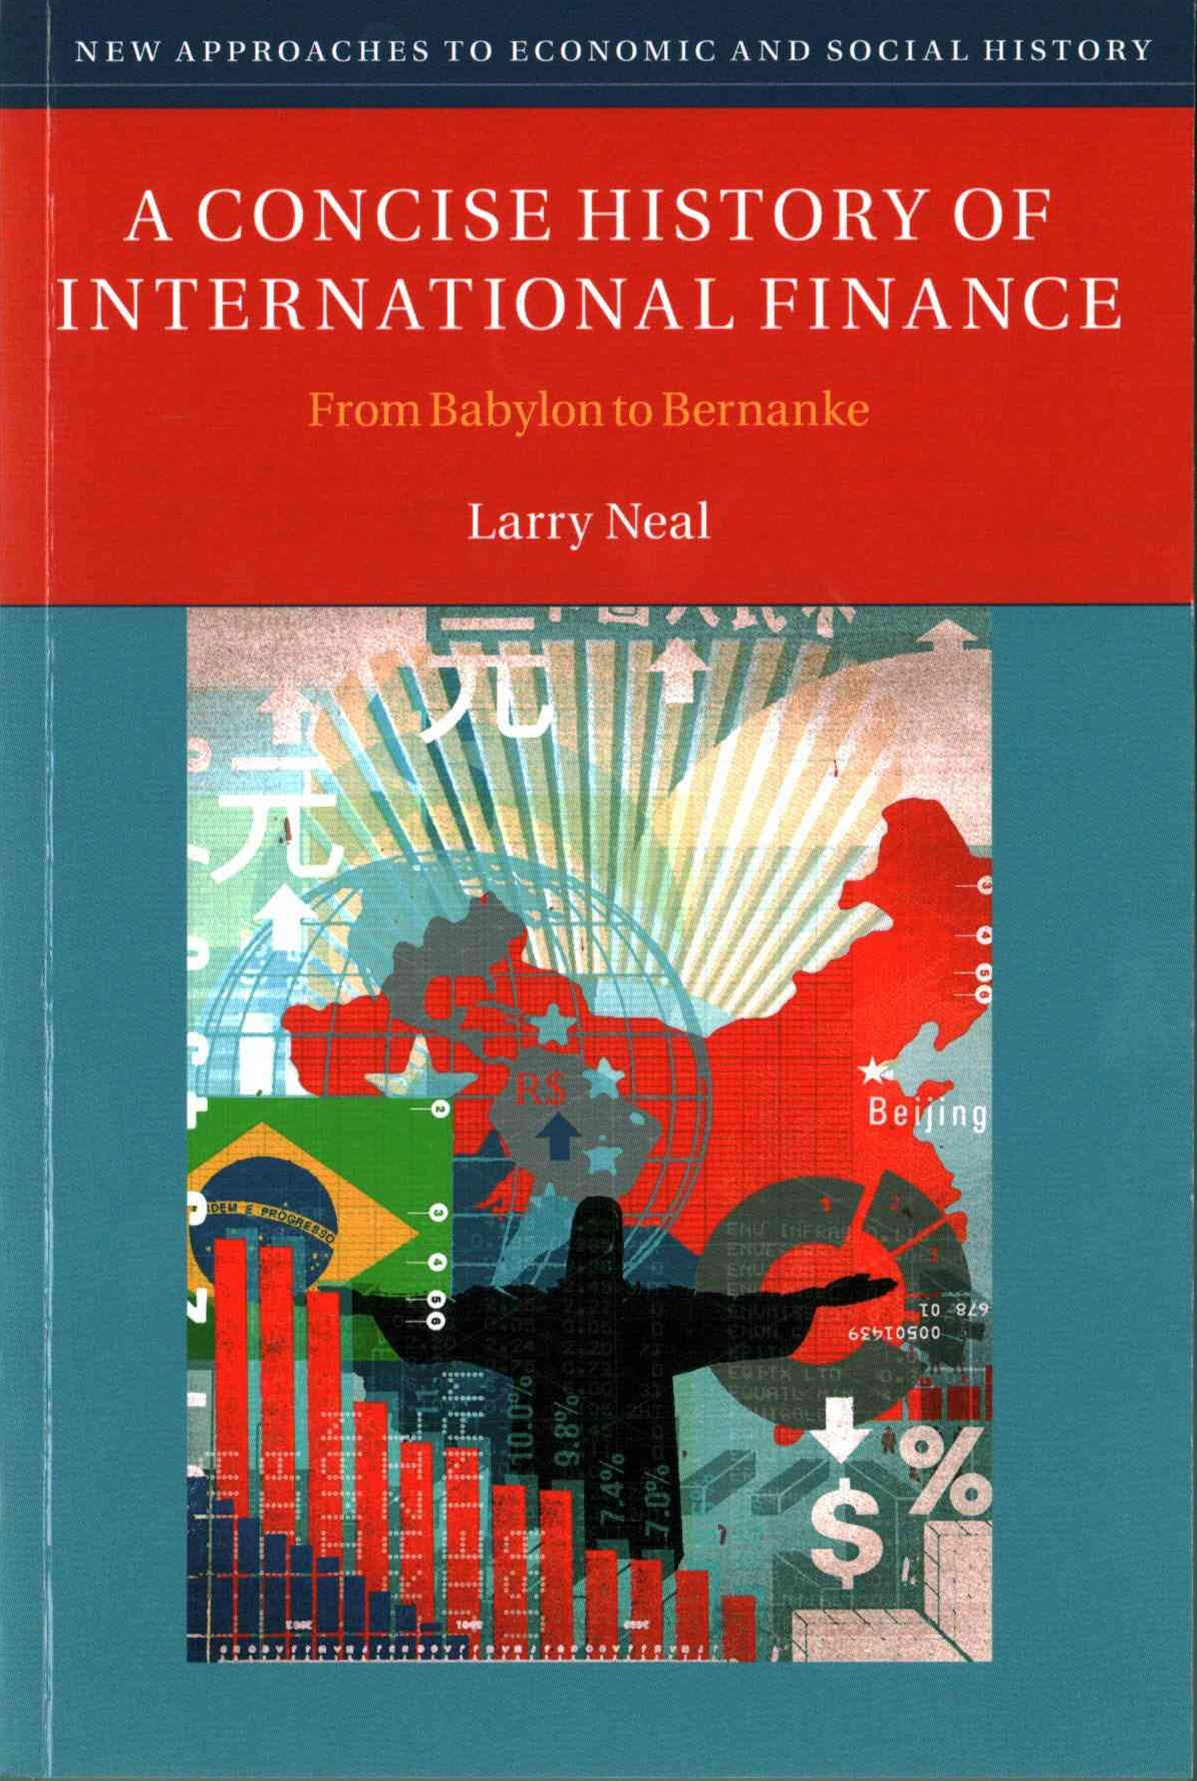 A Concise History of International Finance